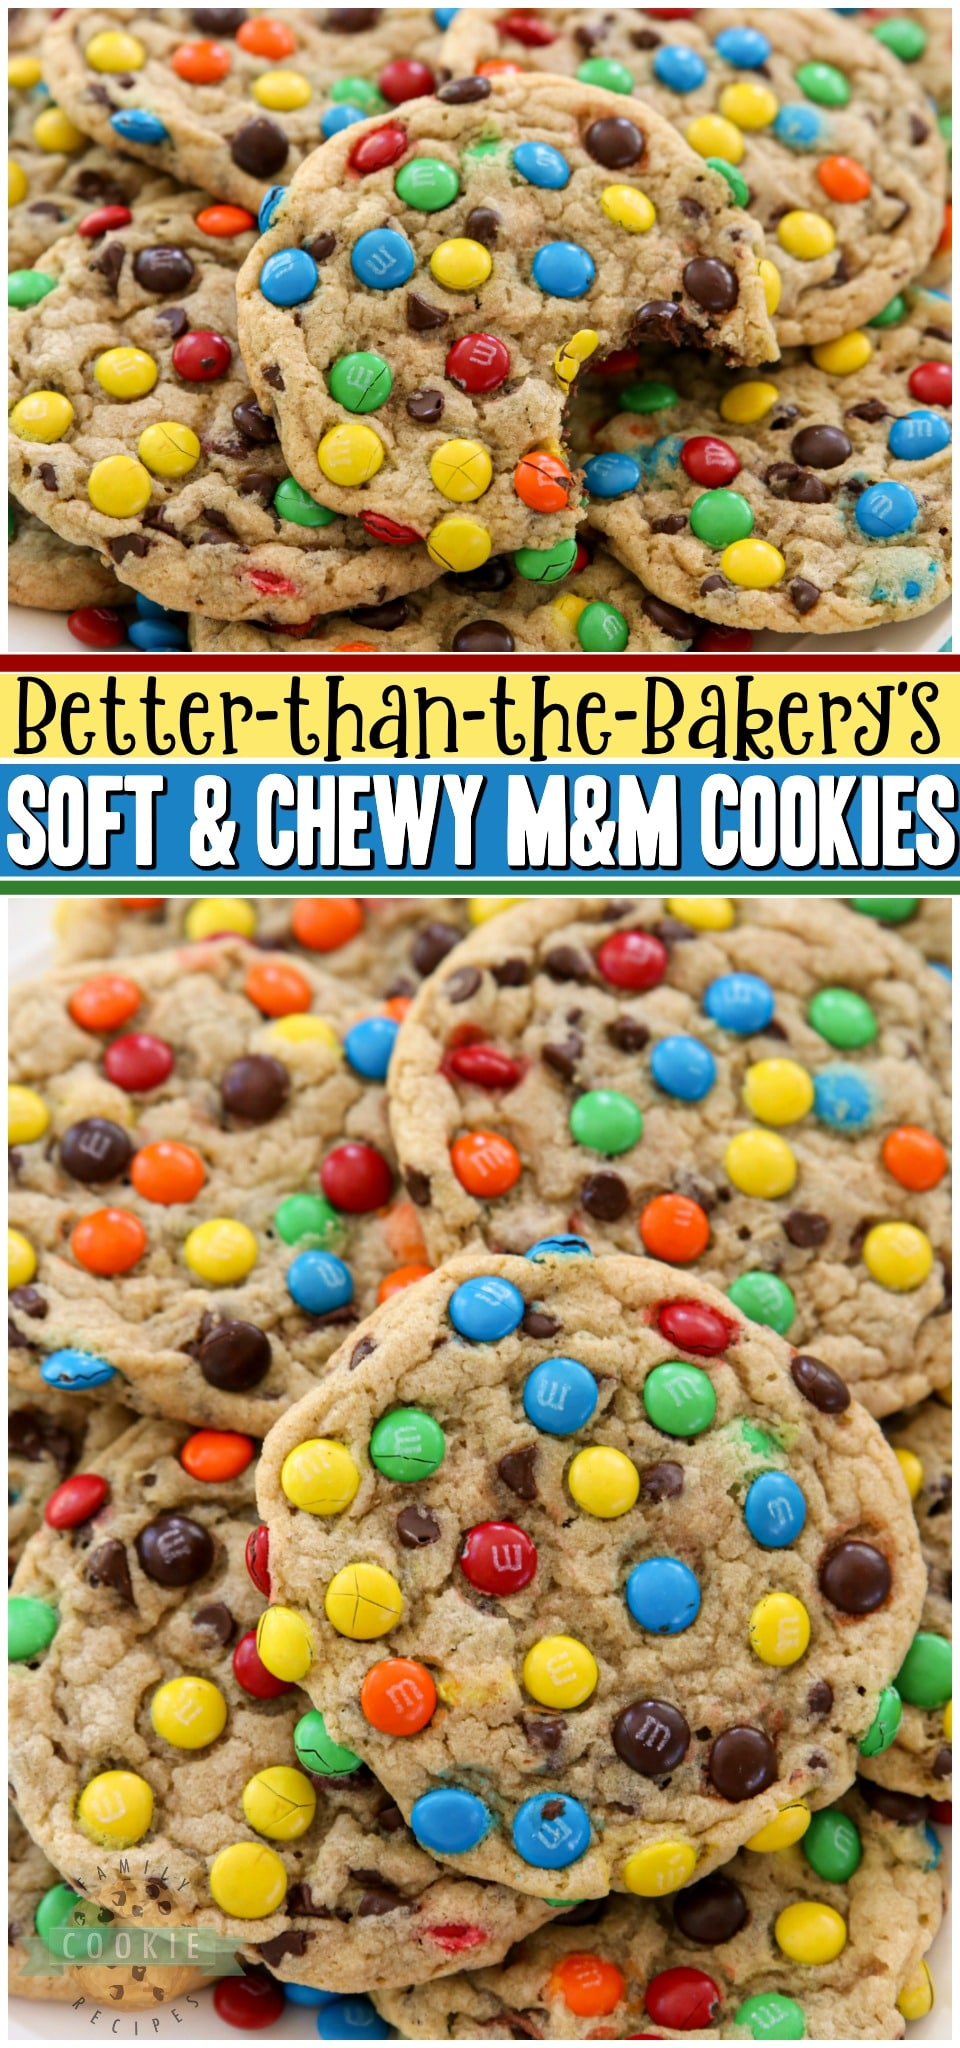 Soft & Chewy M&M Cookies made with butter, sugars, pudding mix & M&M's candy! Easy tip for coating your cookies PERFECTLY with M&M's! BEST #M&M Cookie recipe ever!#cookies #recipe #baking #dessert #softcookies #M&Mcookies from FAMILY COOKIE RECIPES via @buttergirls